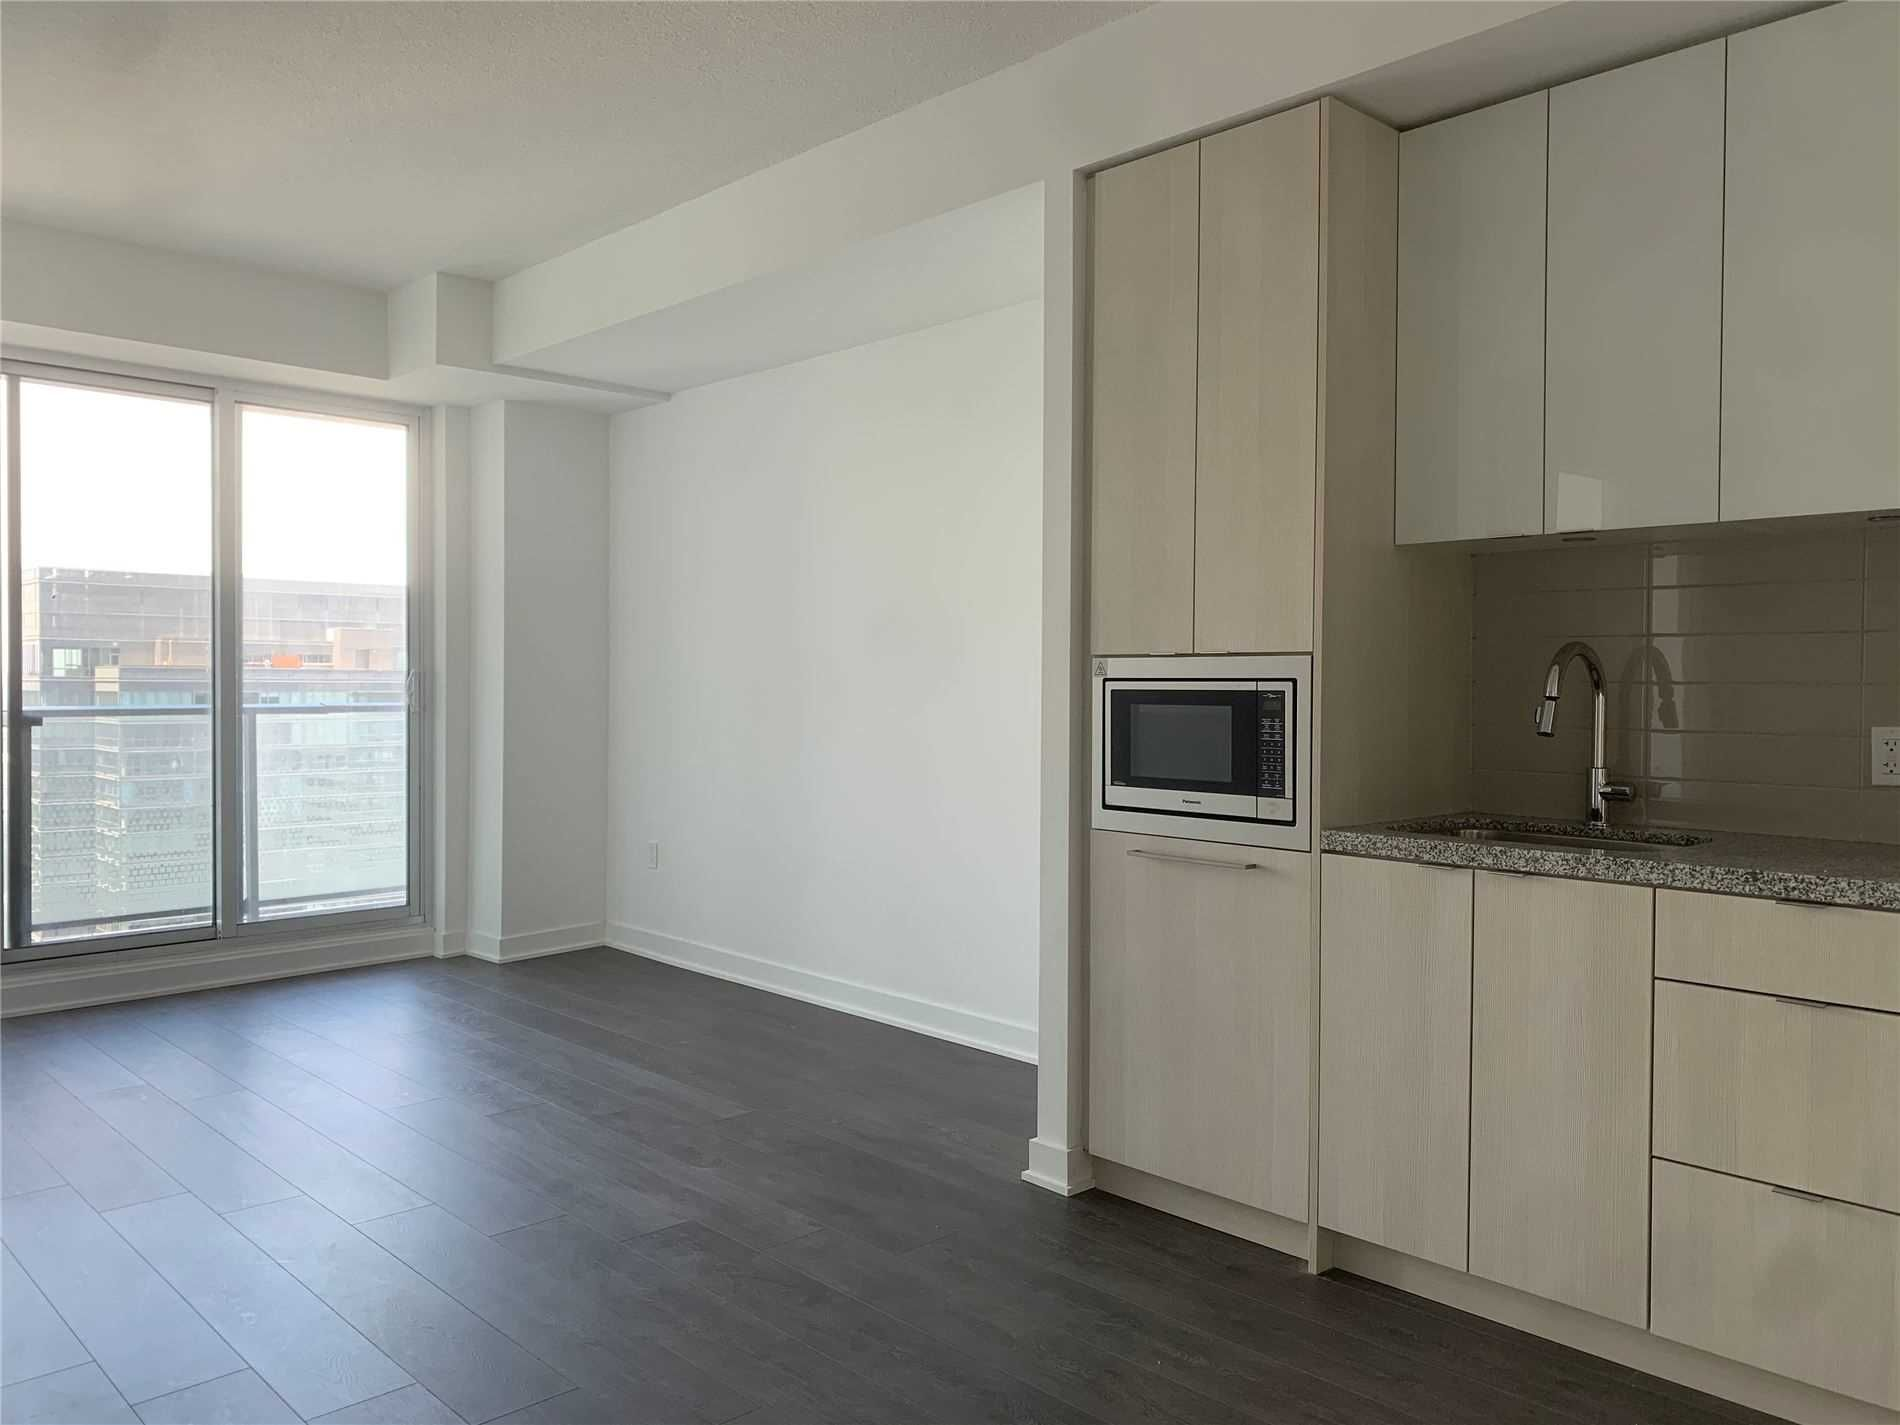 125 Blue Jays Way, unit 4203 for rent in Toronto - image #2